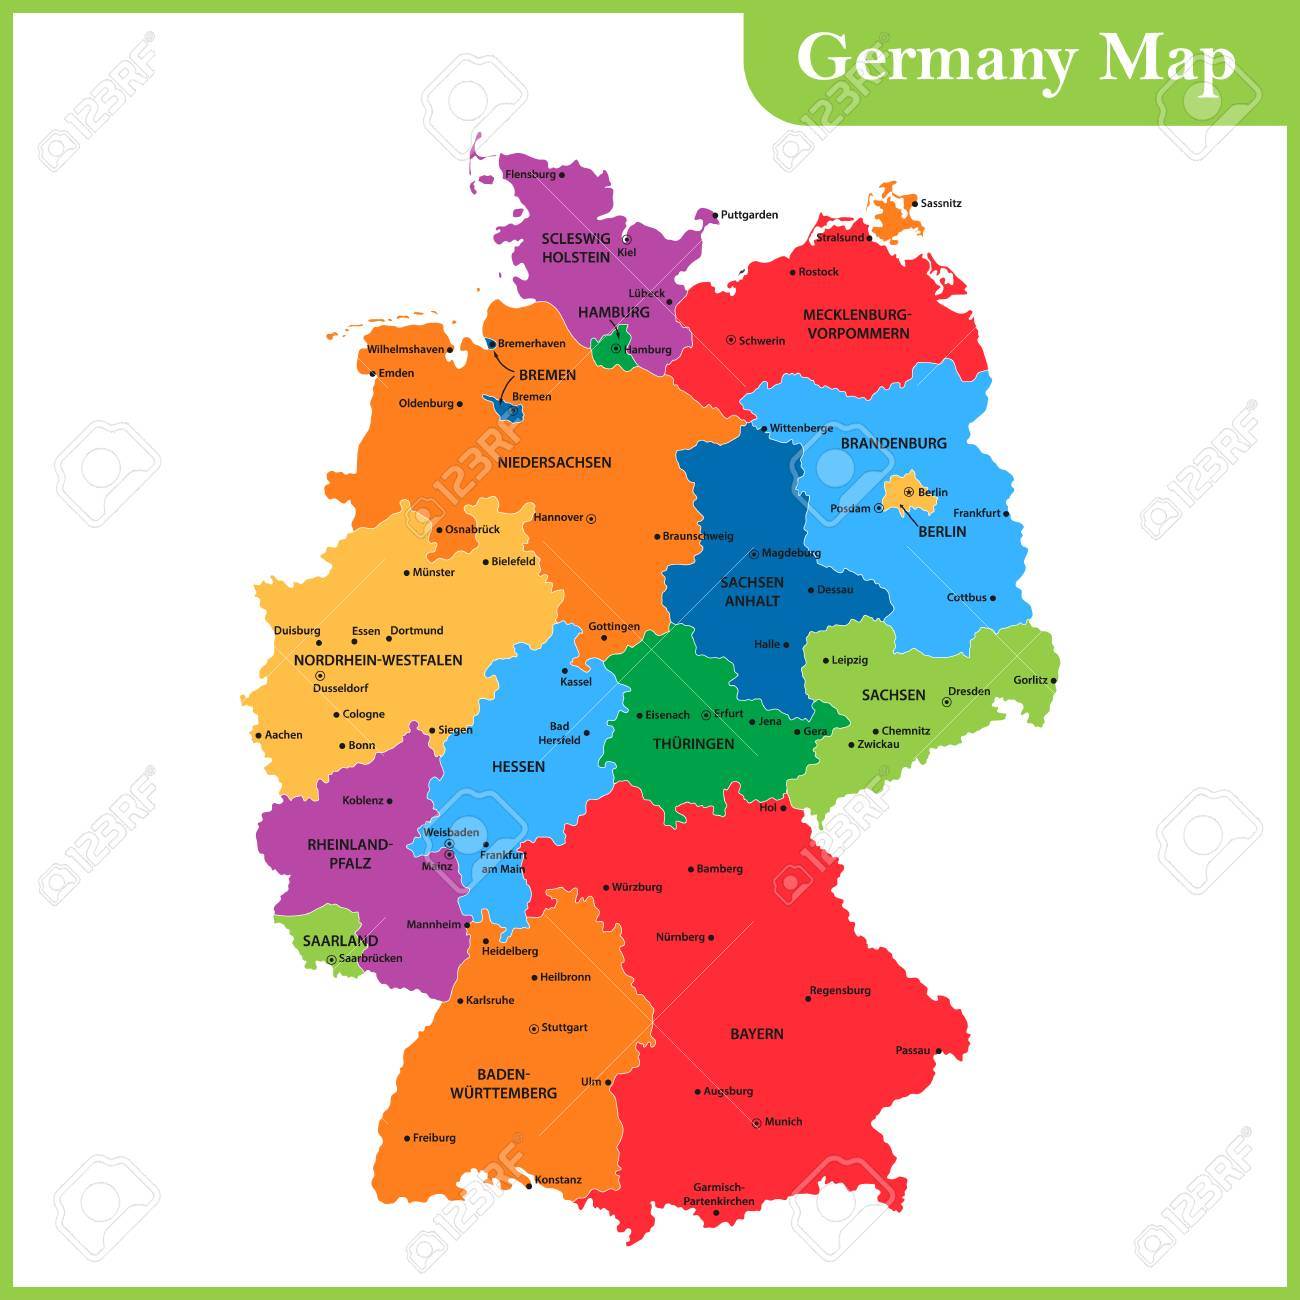 Regions Of Germany Map.The Detailed Map Of The Germany With Regions Or States And Cities